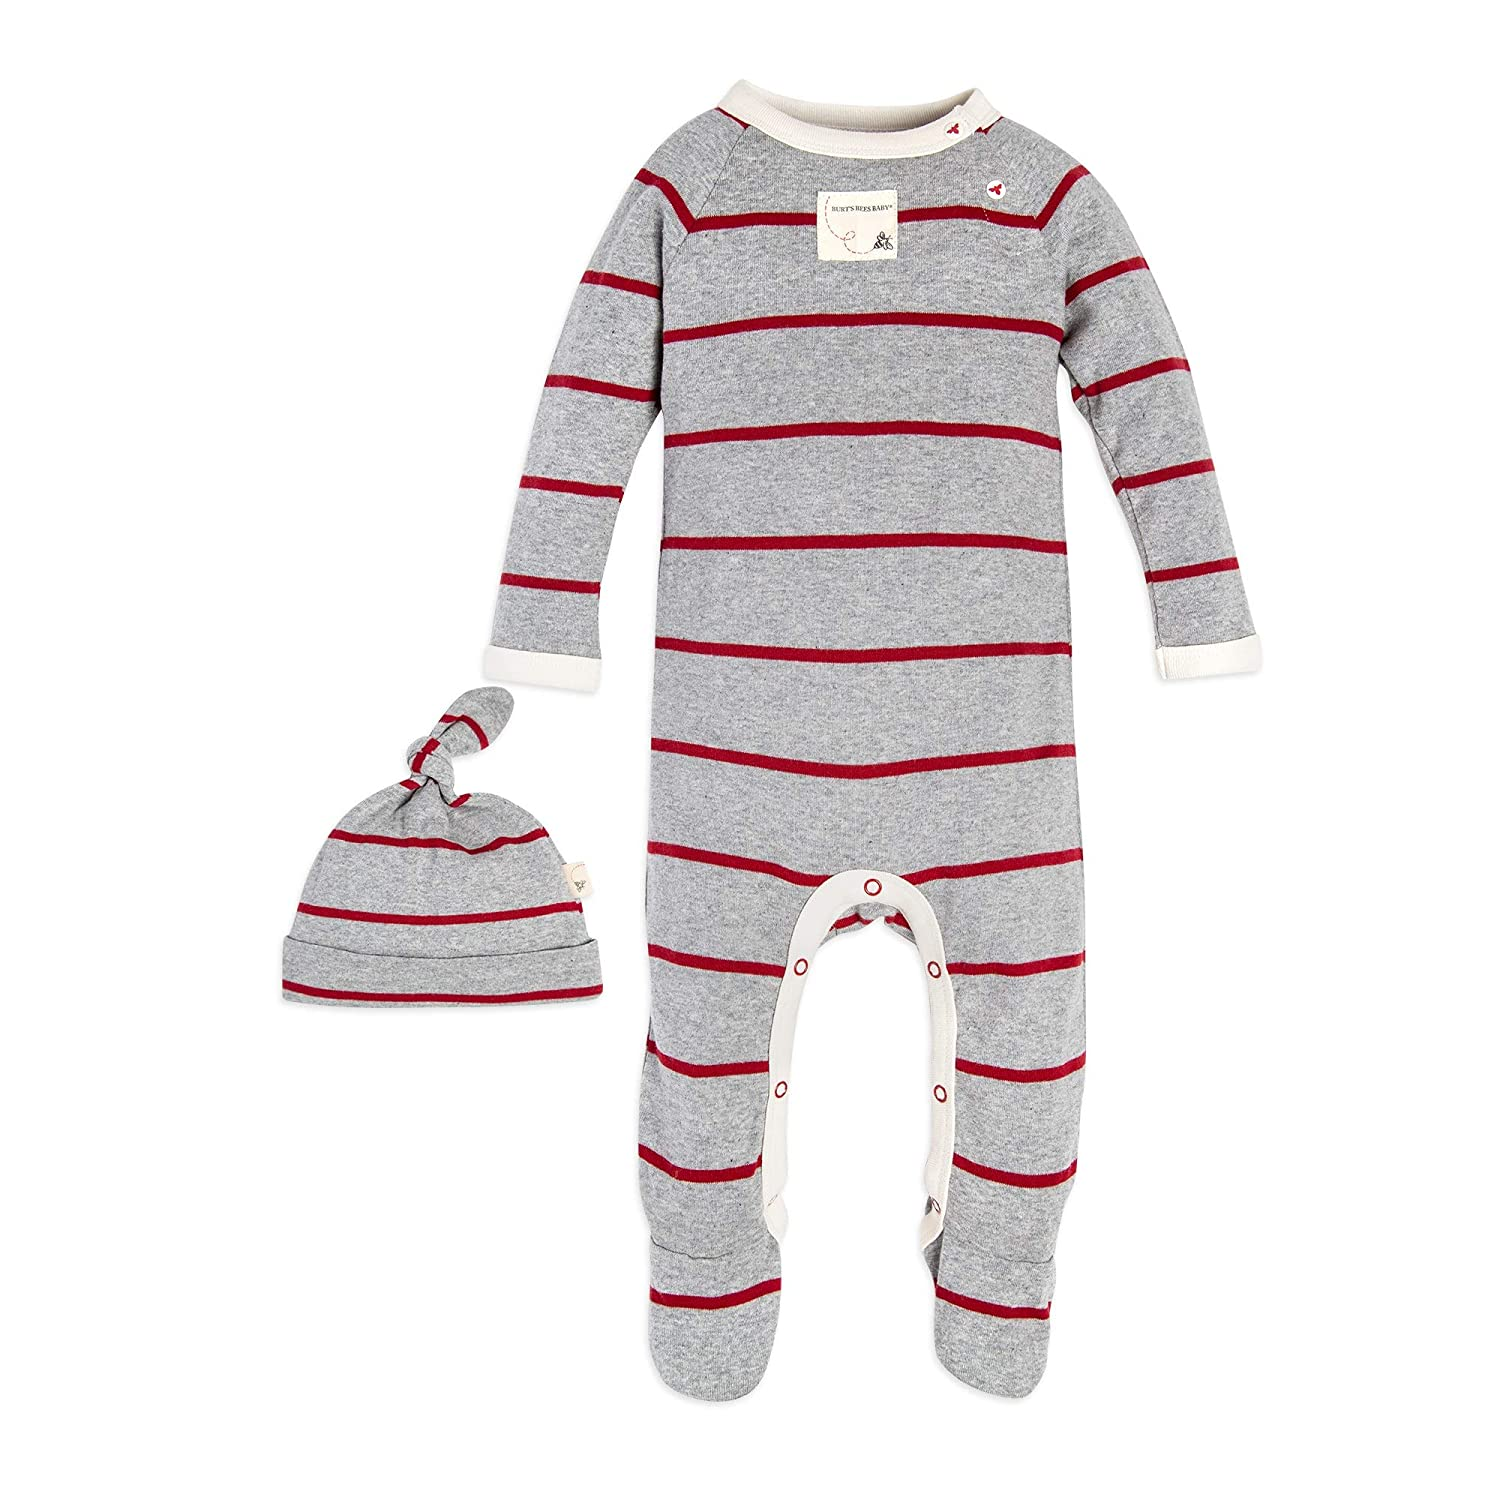 Burt's Bees Baby - Unisex Baby Romper and Hat Set, One Piece Jumpsuit and Beanie Set, 100% Organic Cotton